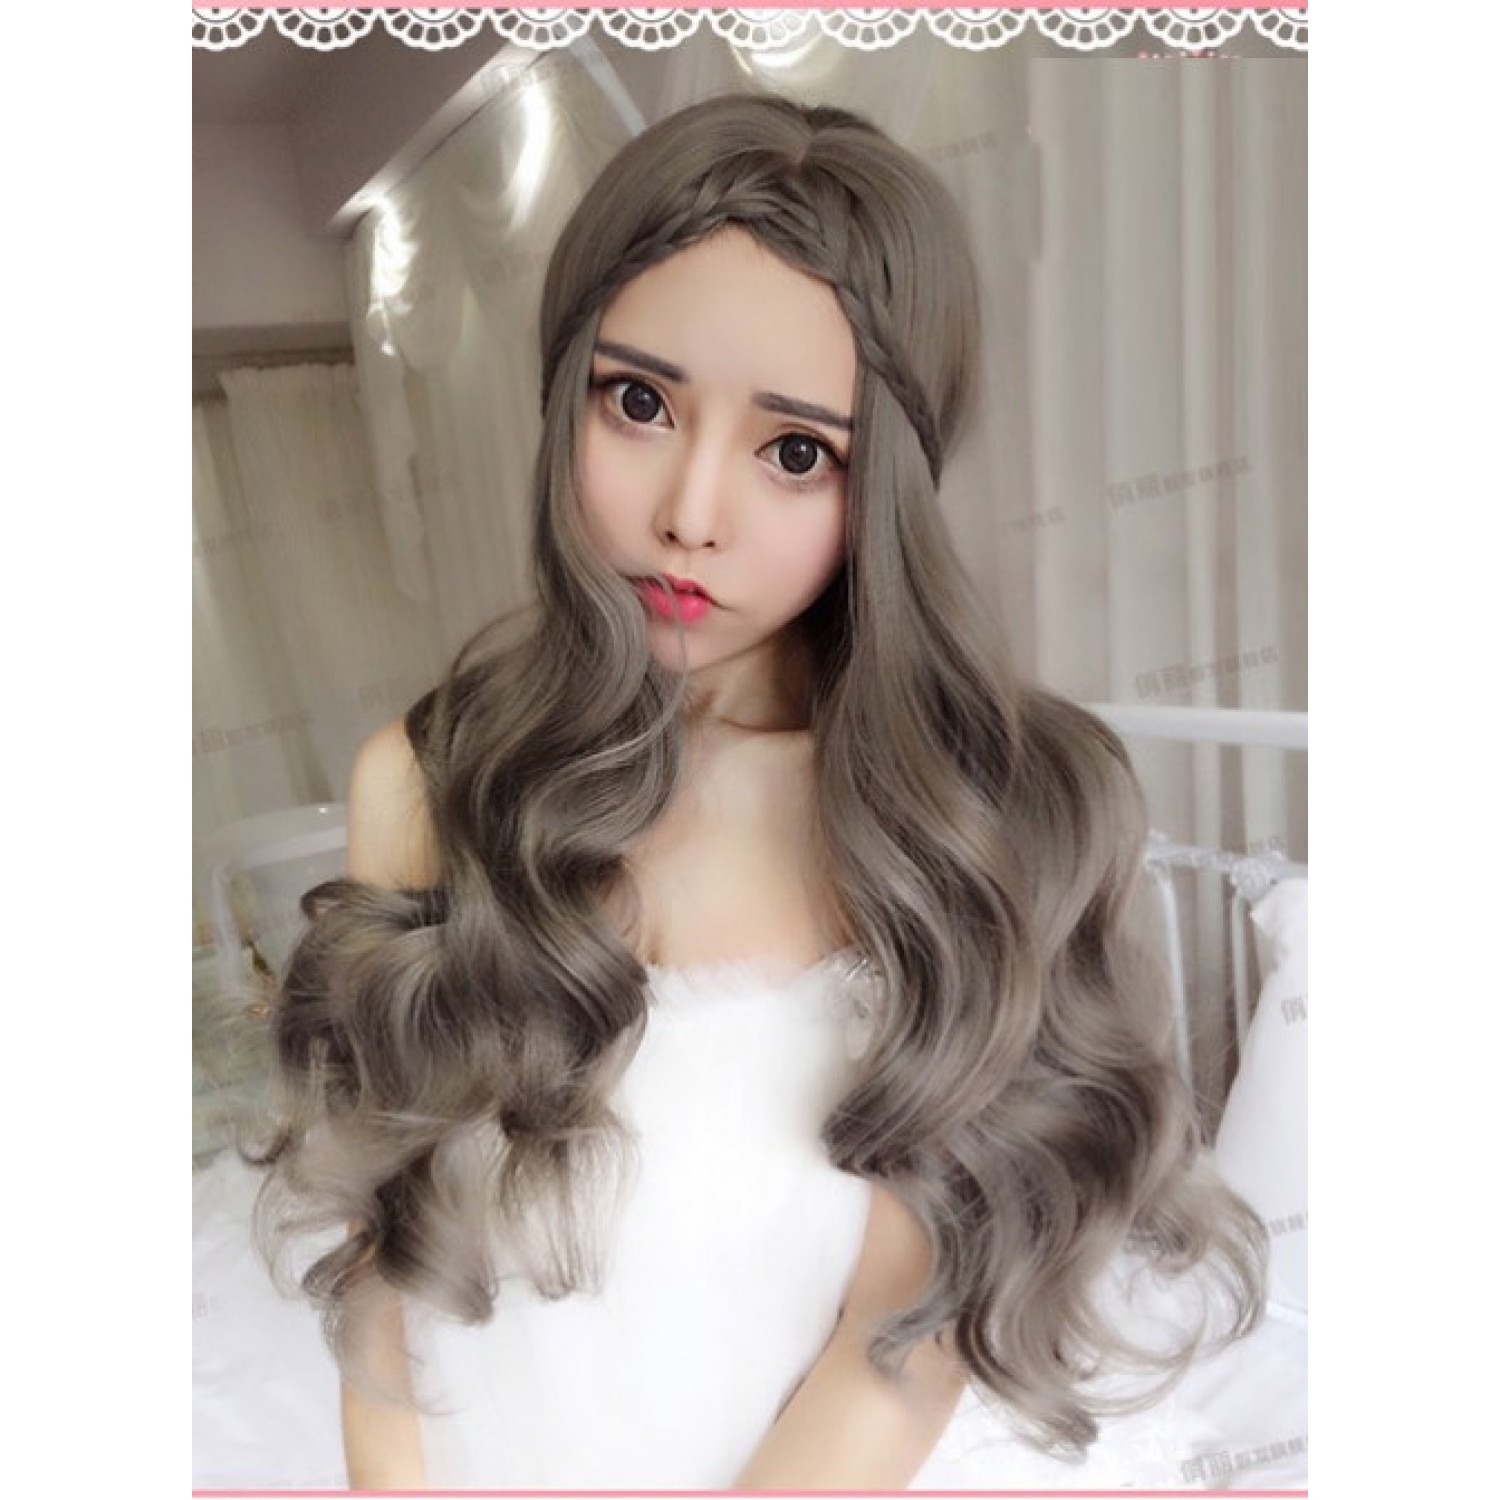 Aoki Gridelin Long Curly Lolita Wig with Centre Parting Bangs